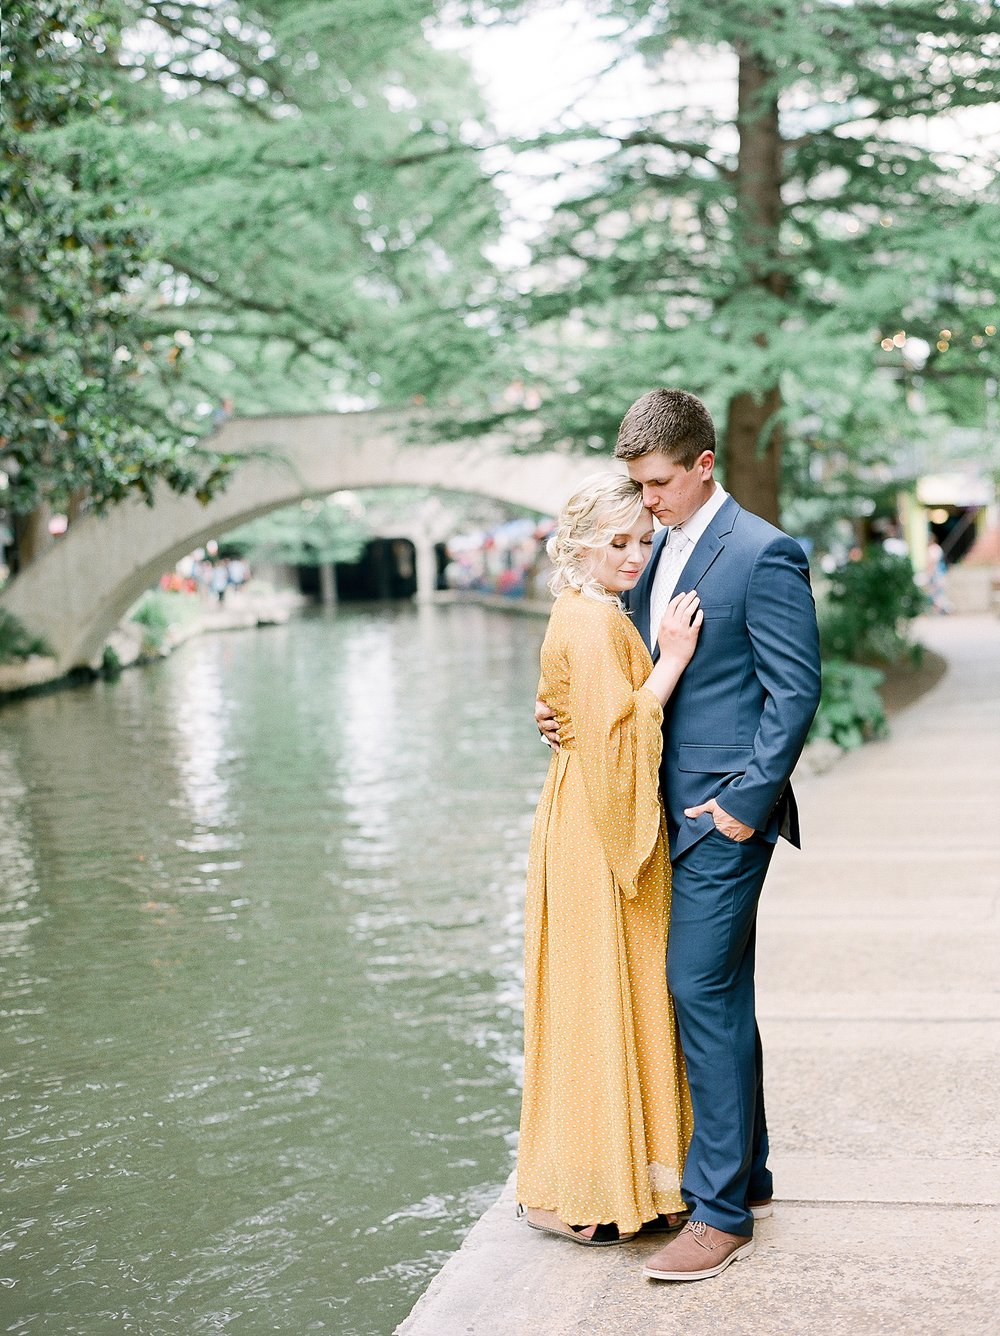 Hybrid Co Anniversary Shoot at River Walk, San Antonio, TX by Julie Paisley Photography_0001.jpg